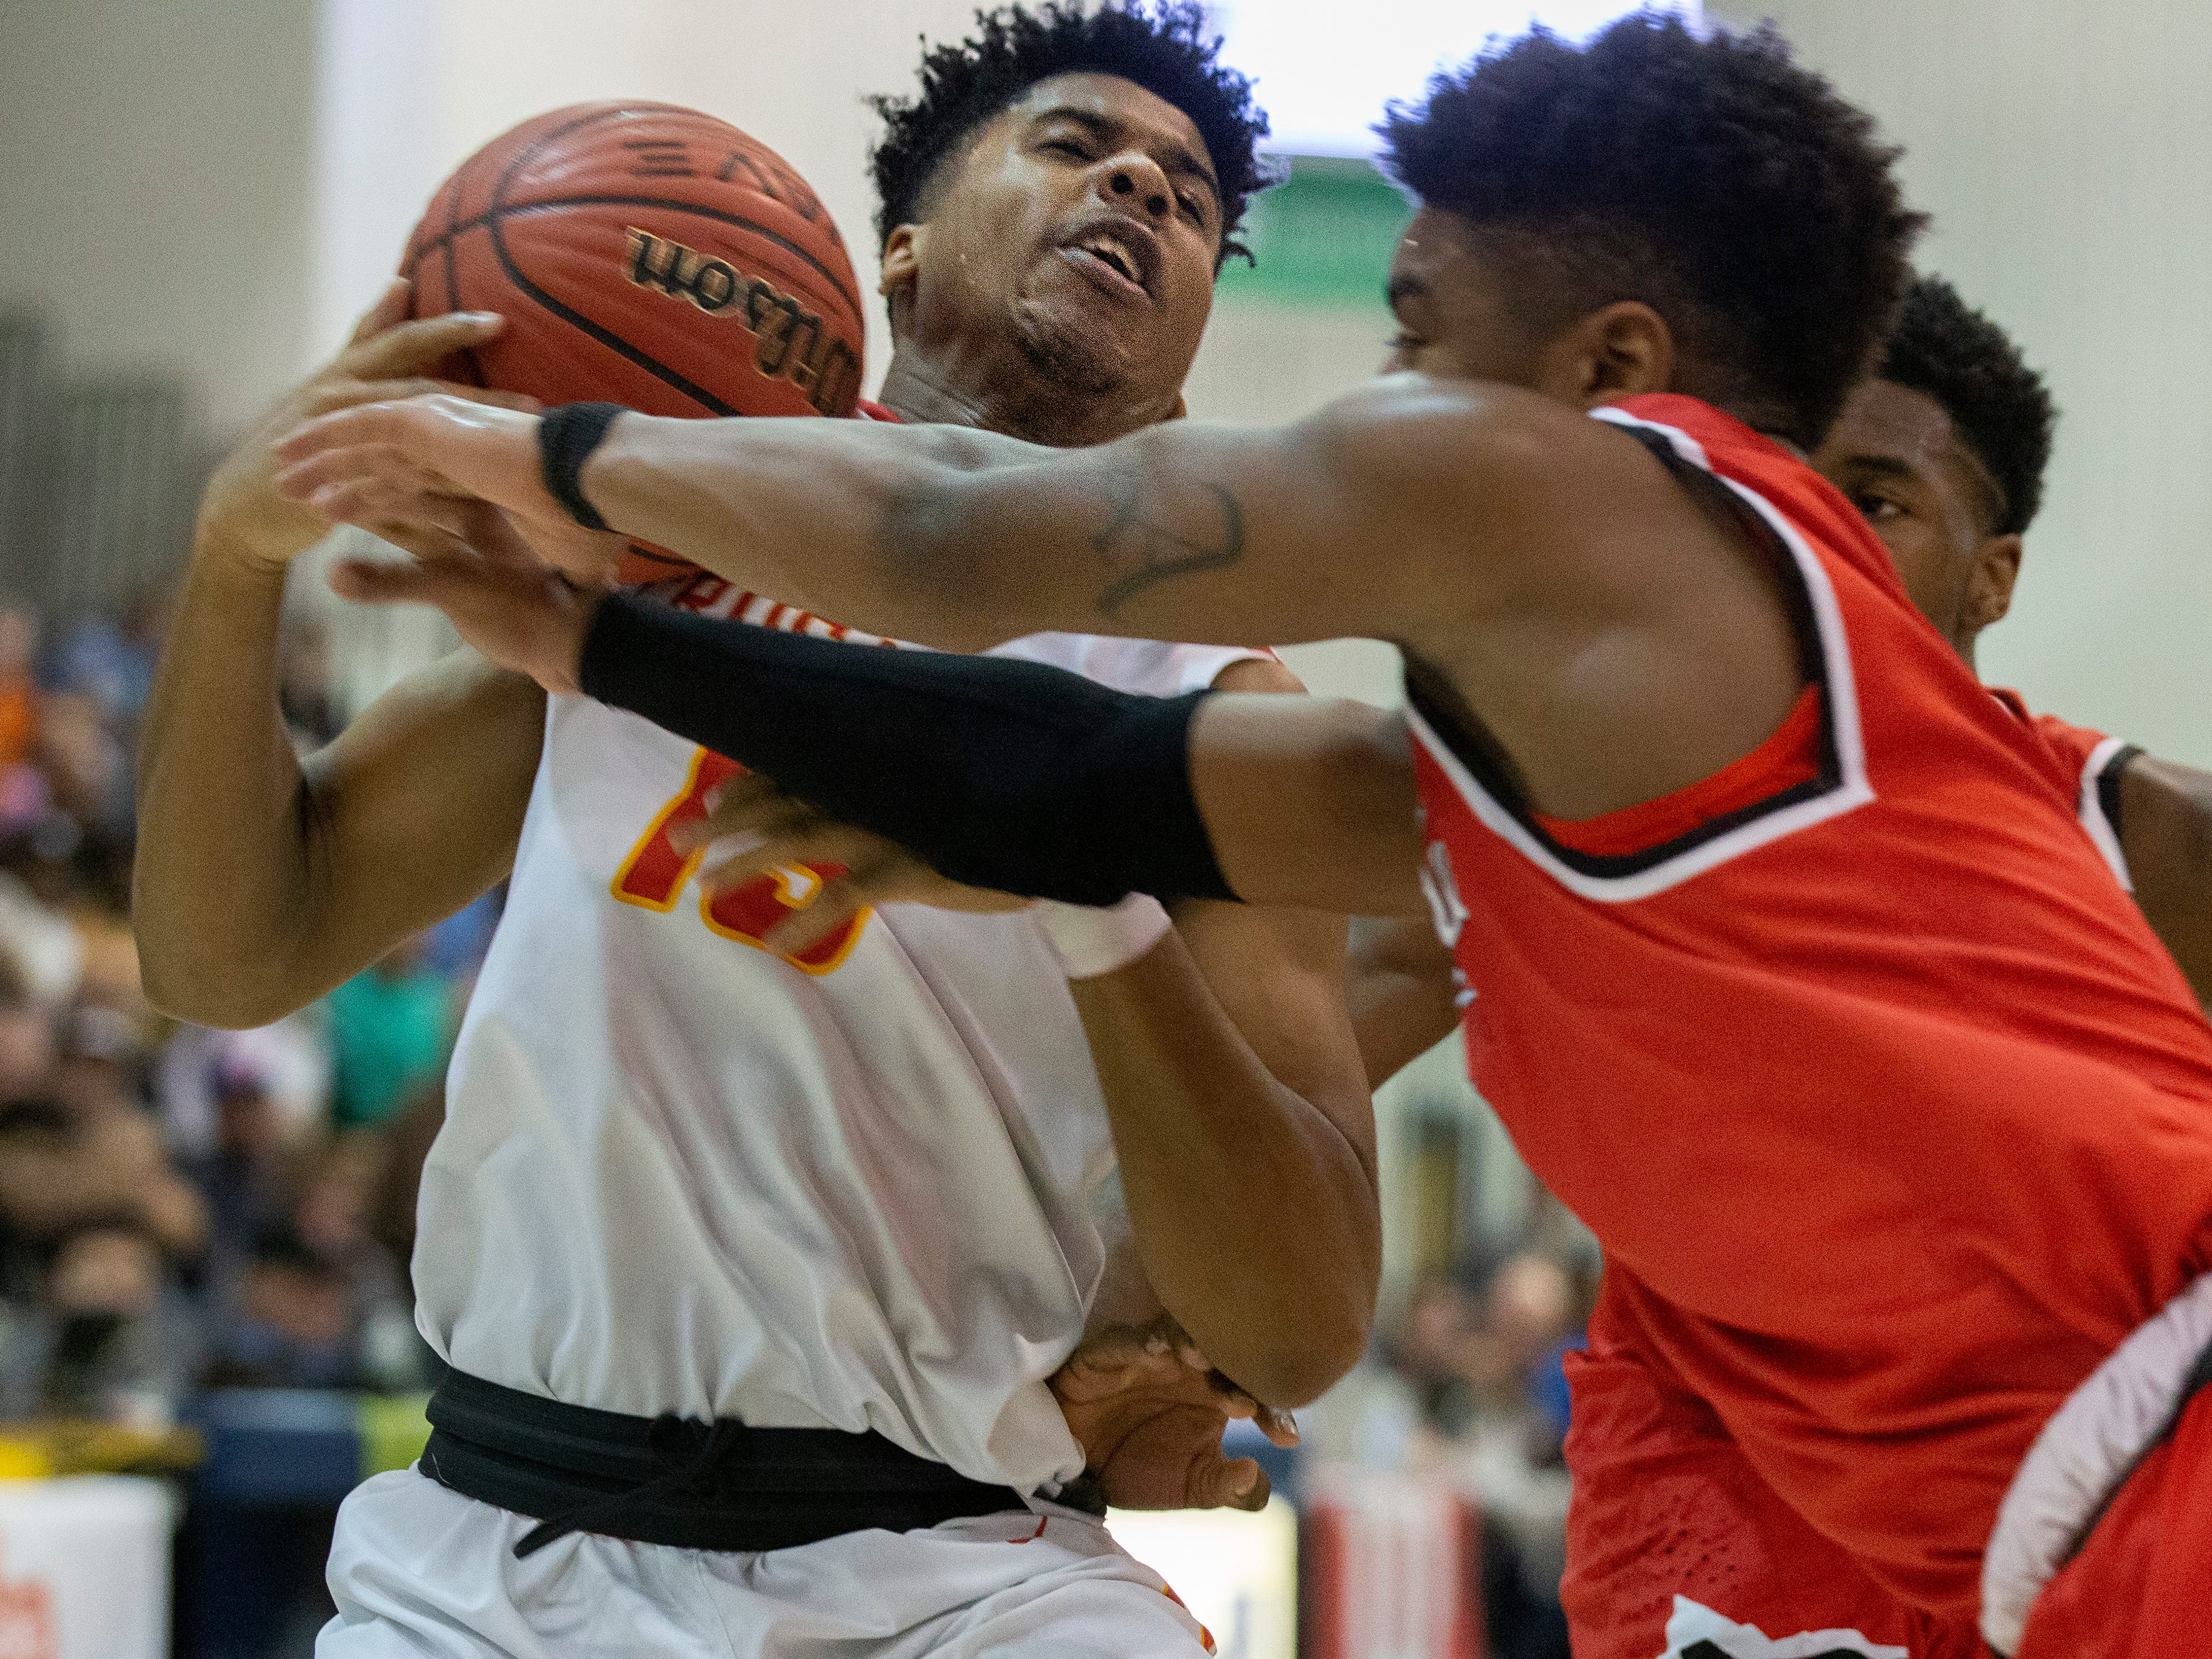 Bergen Catholic's Raejon Figures hits traffic as he works under the basket. Bergen Catholic vs. Newark East Side in the 5:30 p.m. semifinals of the 2019 NJSIAA Tournament of Champions in Toms River on March 15, 2019.